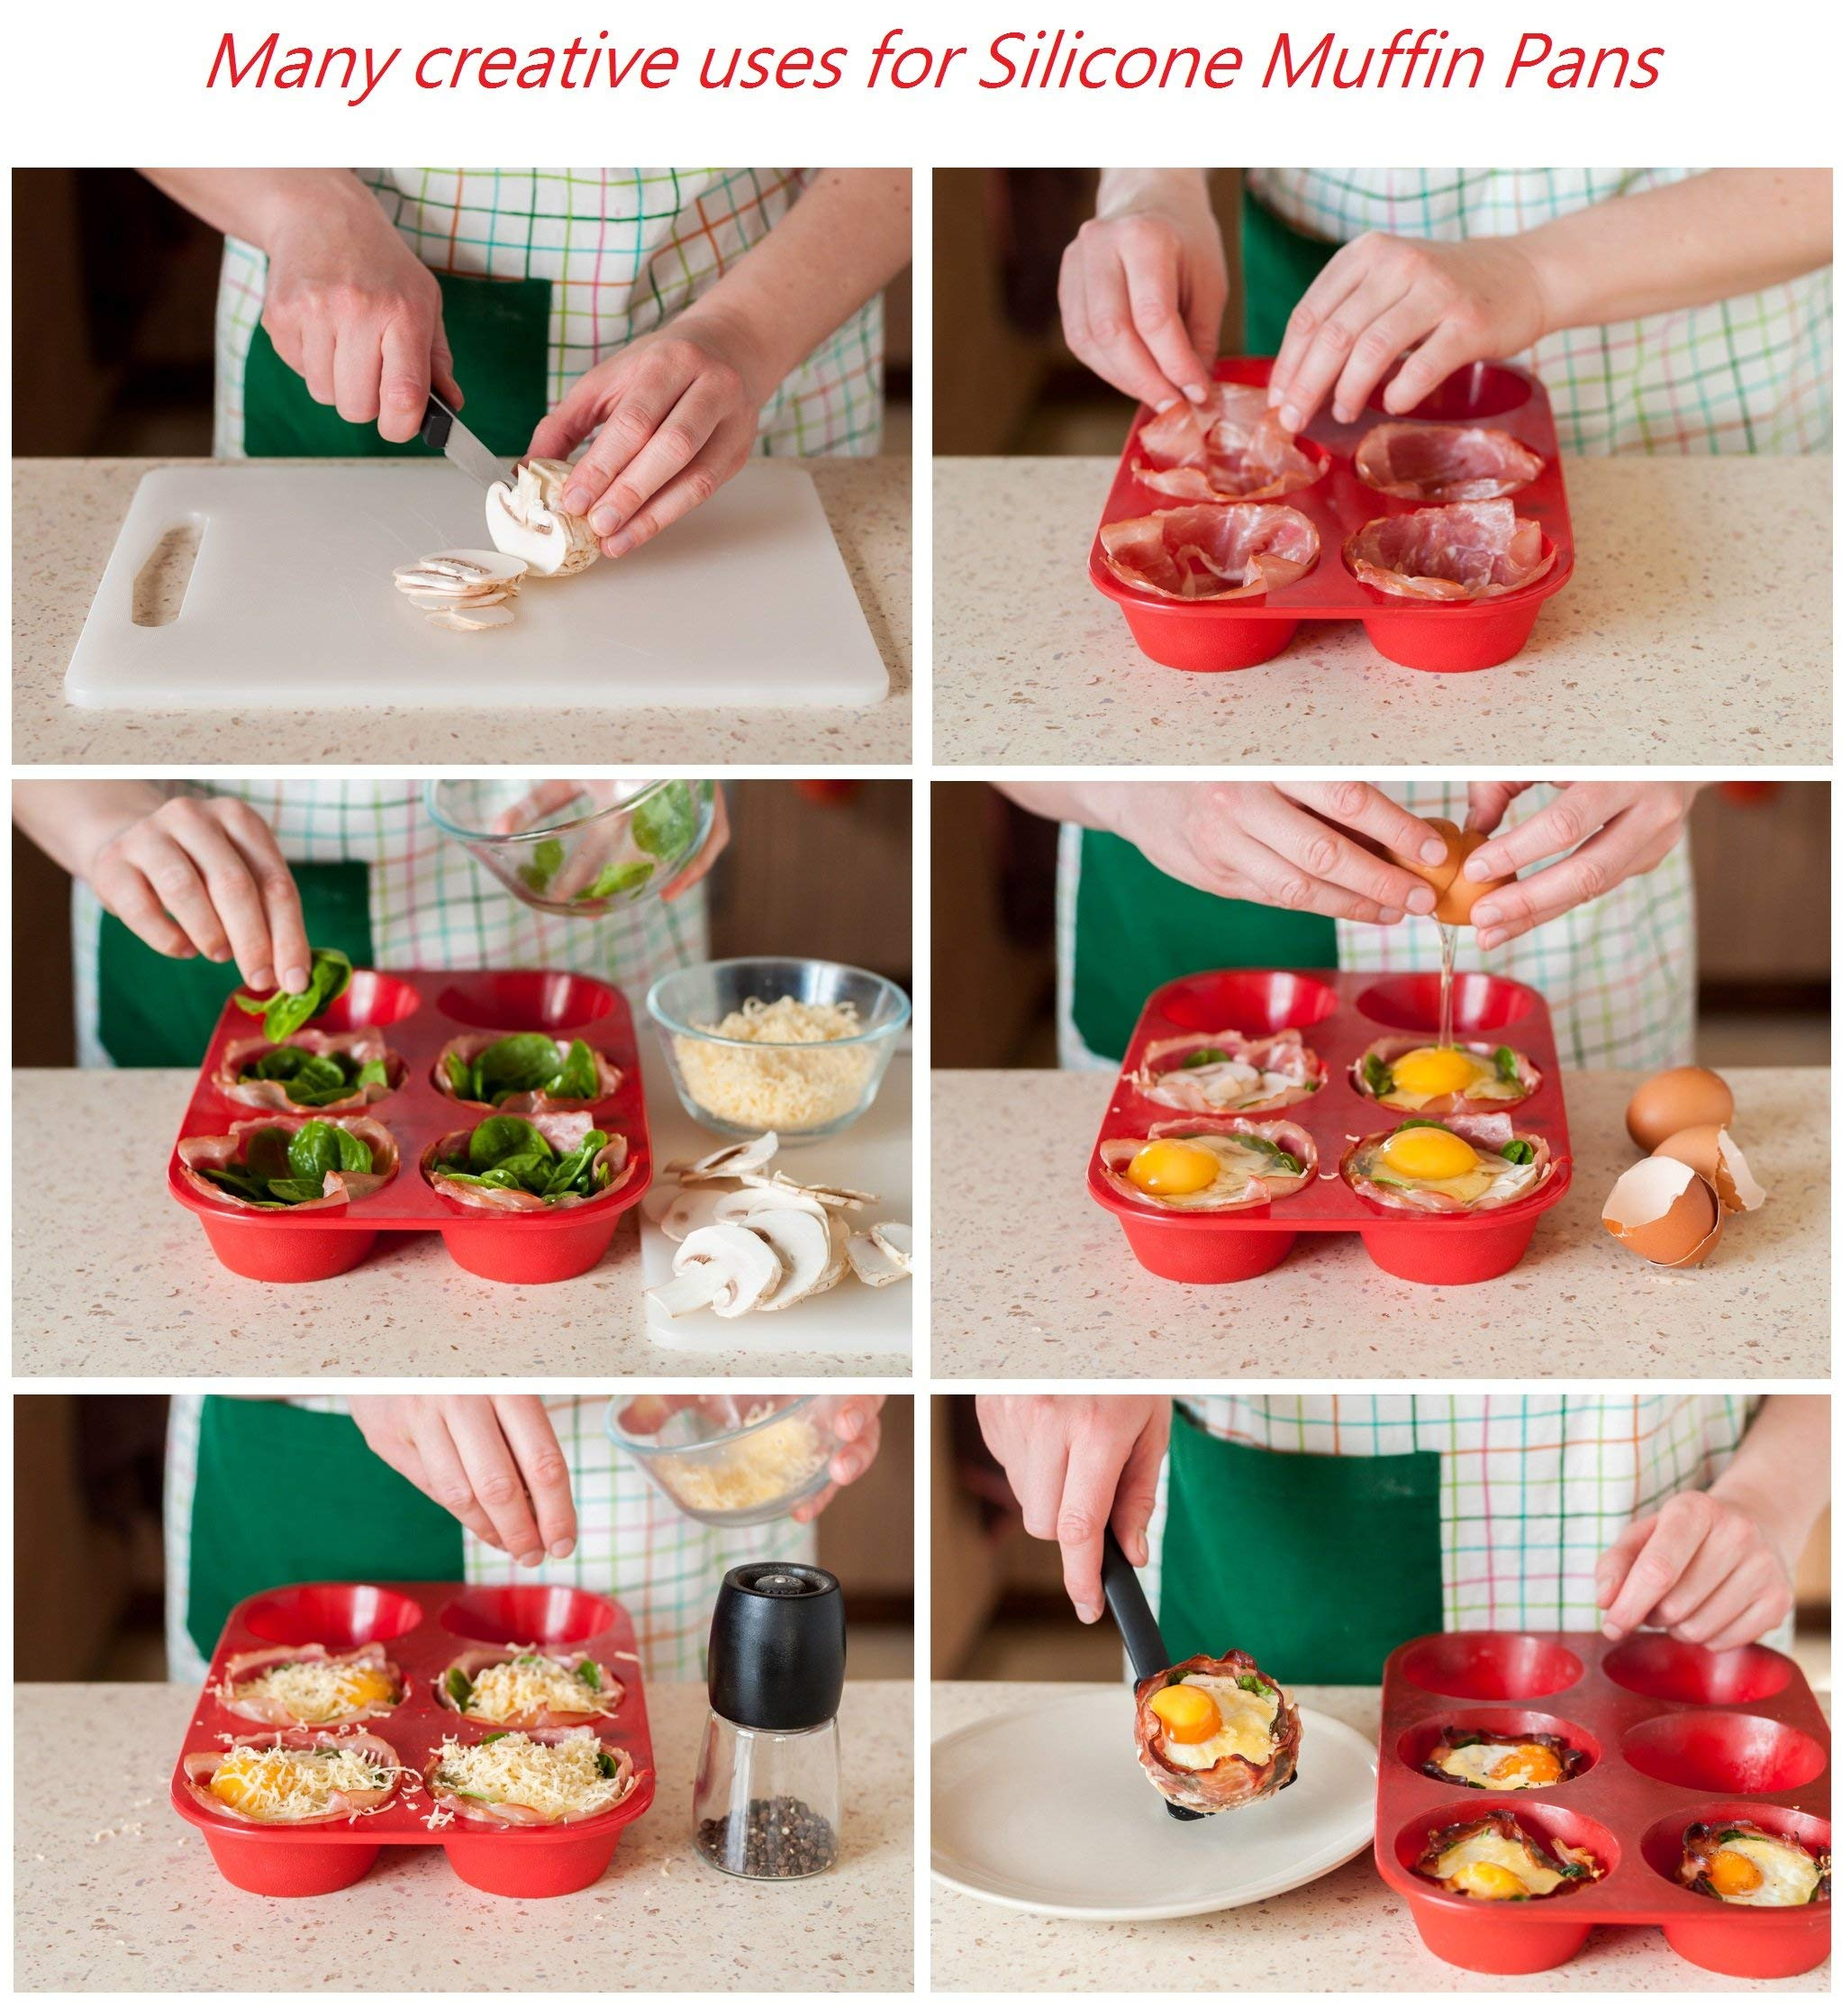 Silicone Texas Muffin Pans and Thanksgiving Cupcake Maker (3, 6 Cup) by Silicone Designs (Image #5)